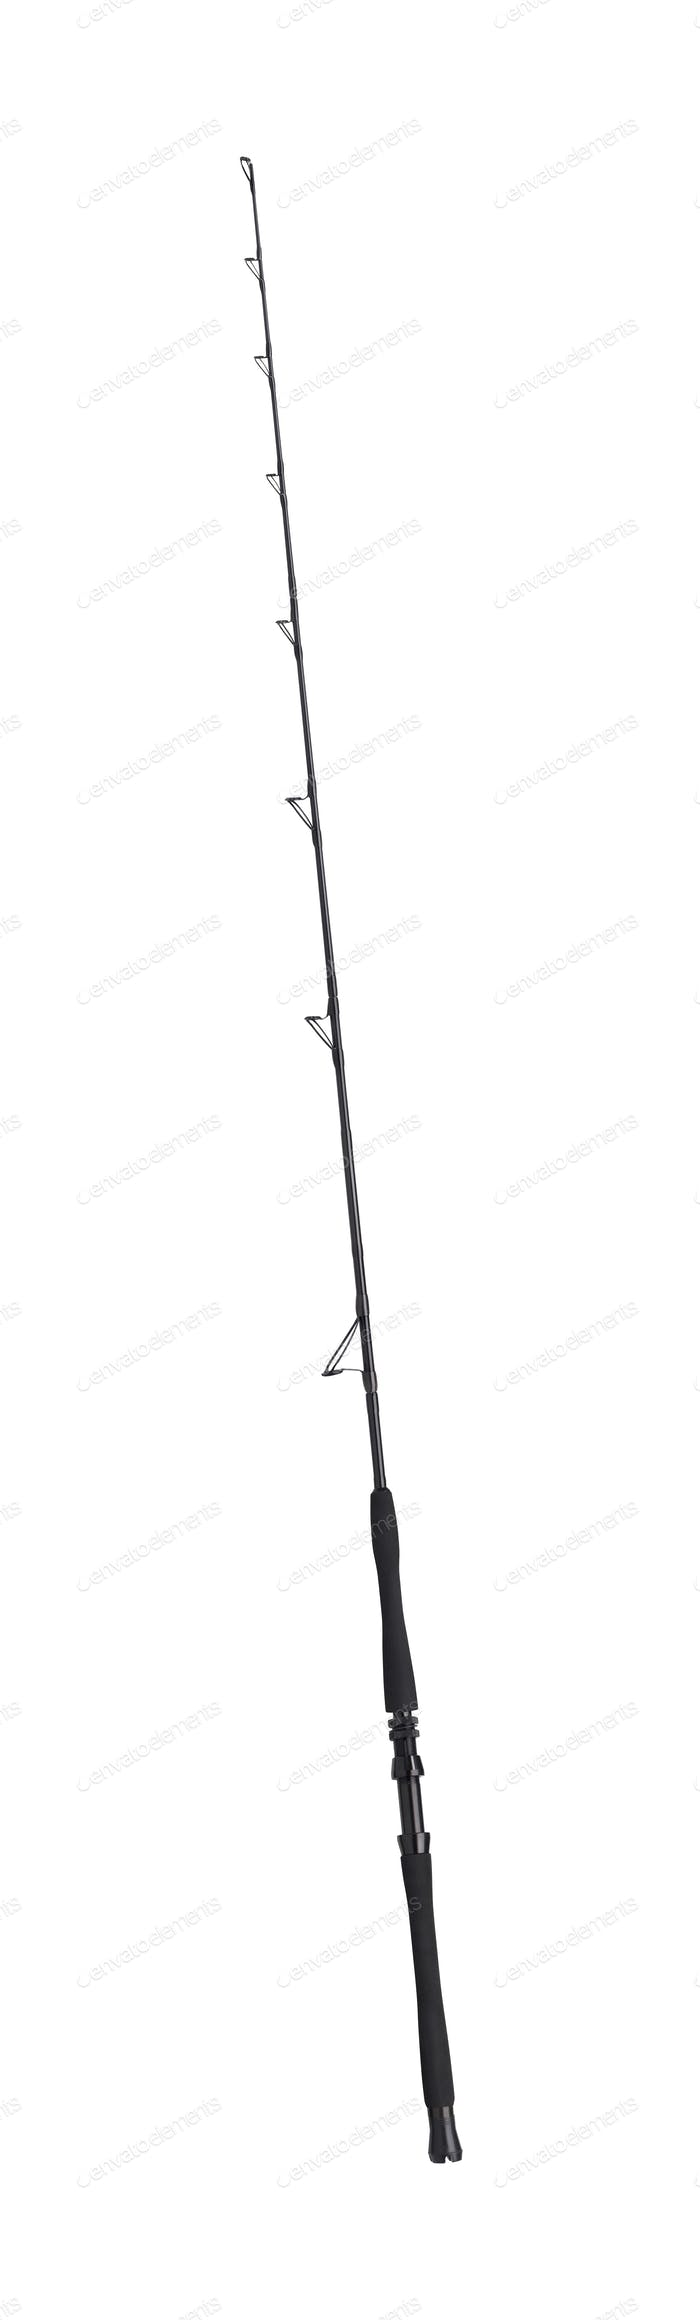 Spinning rod for fishing isolated